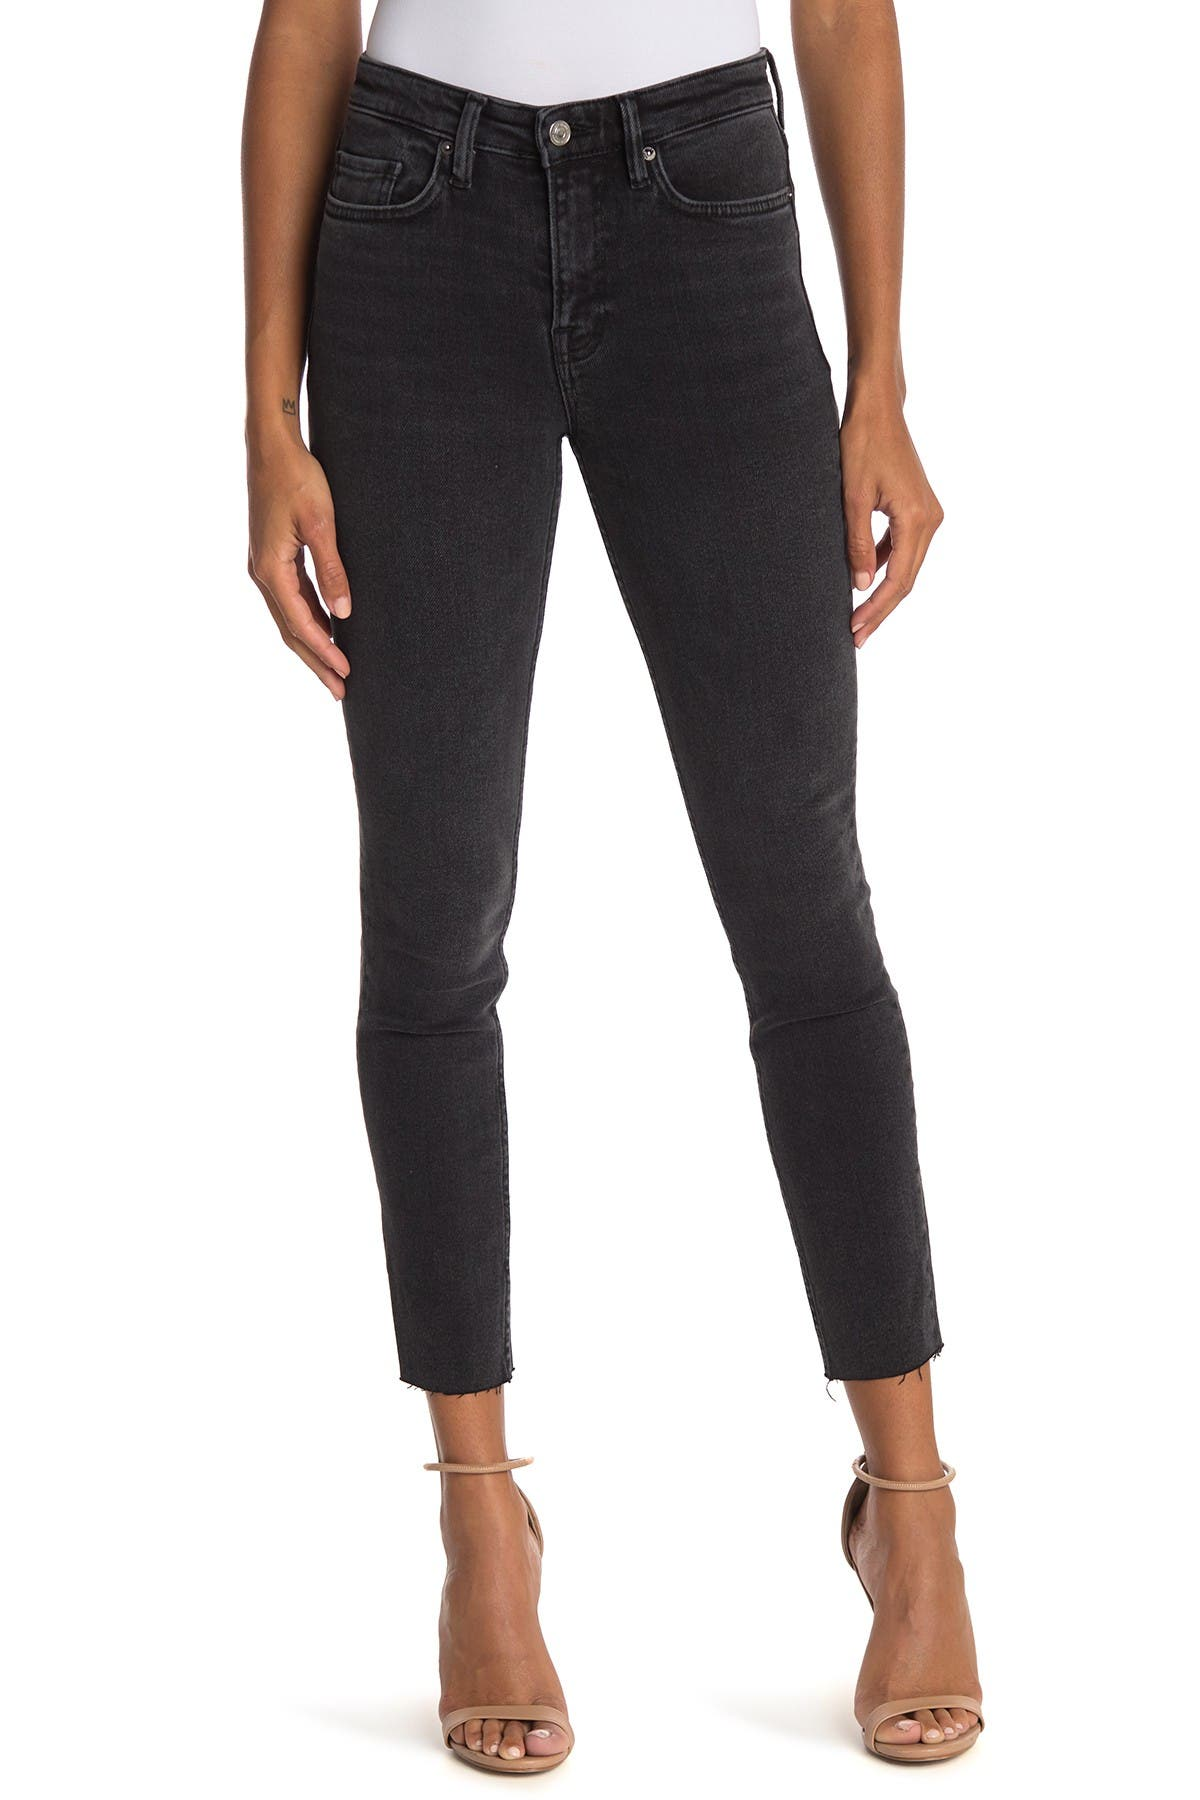 Image of ALLSAINTS Roxanne Raw Crop Skinny Jeans